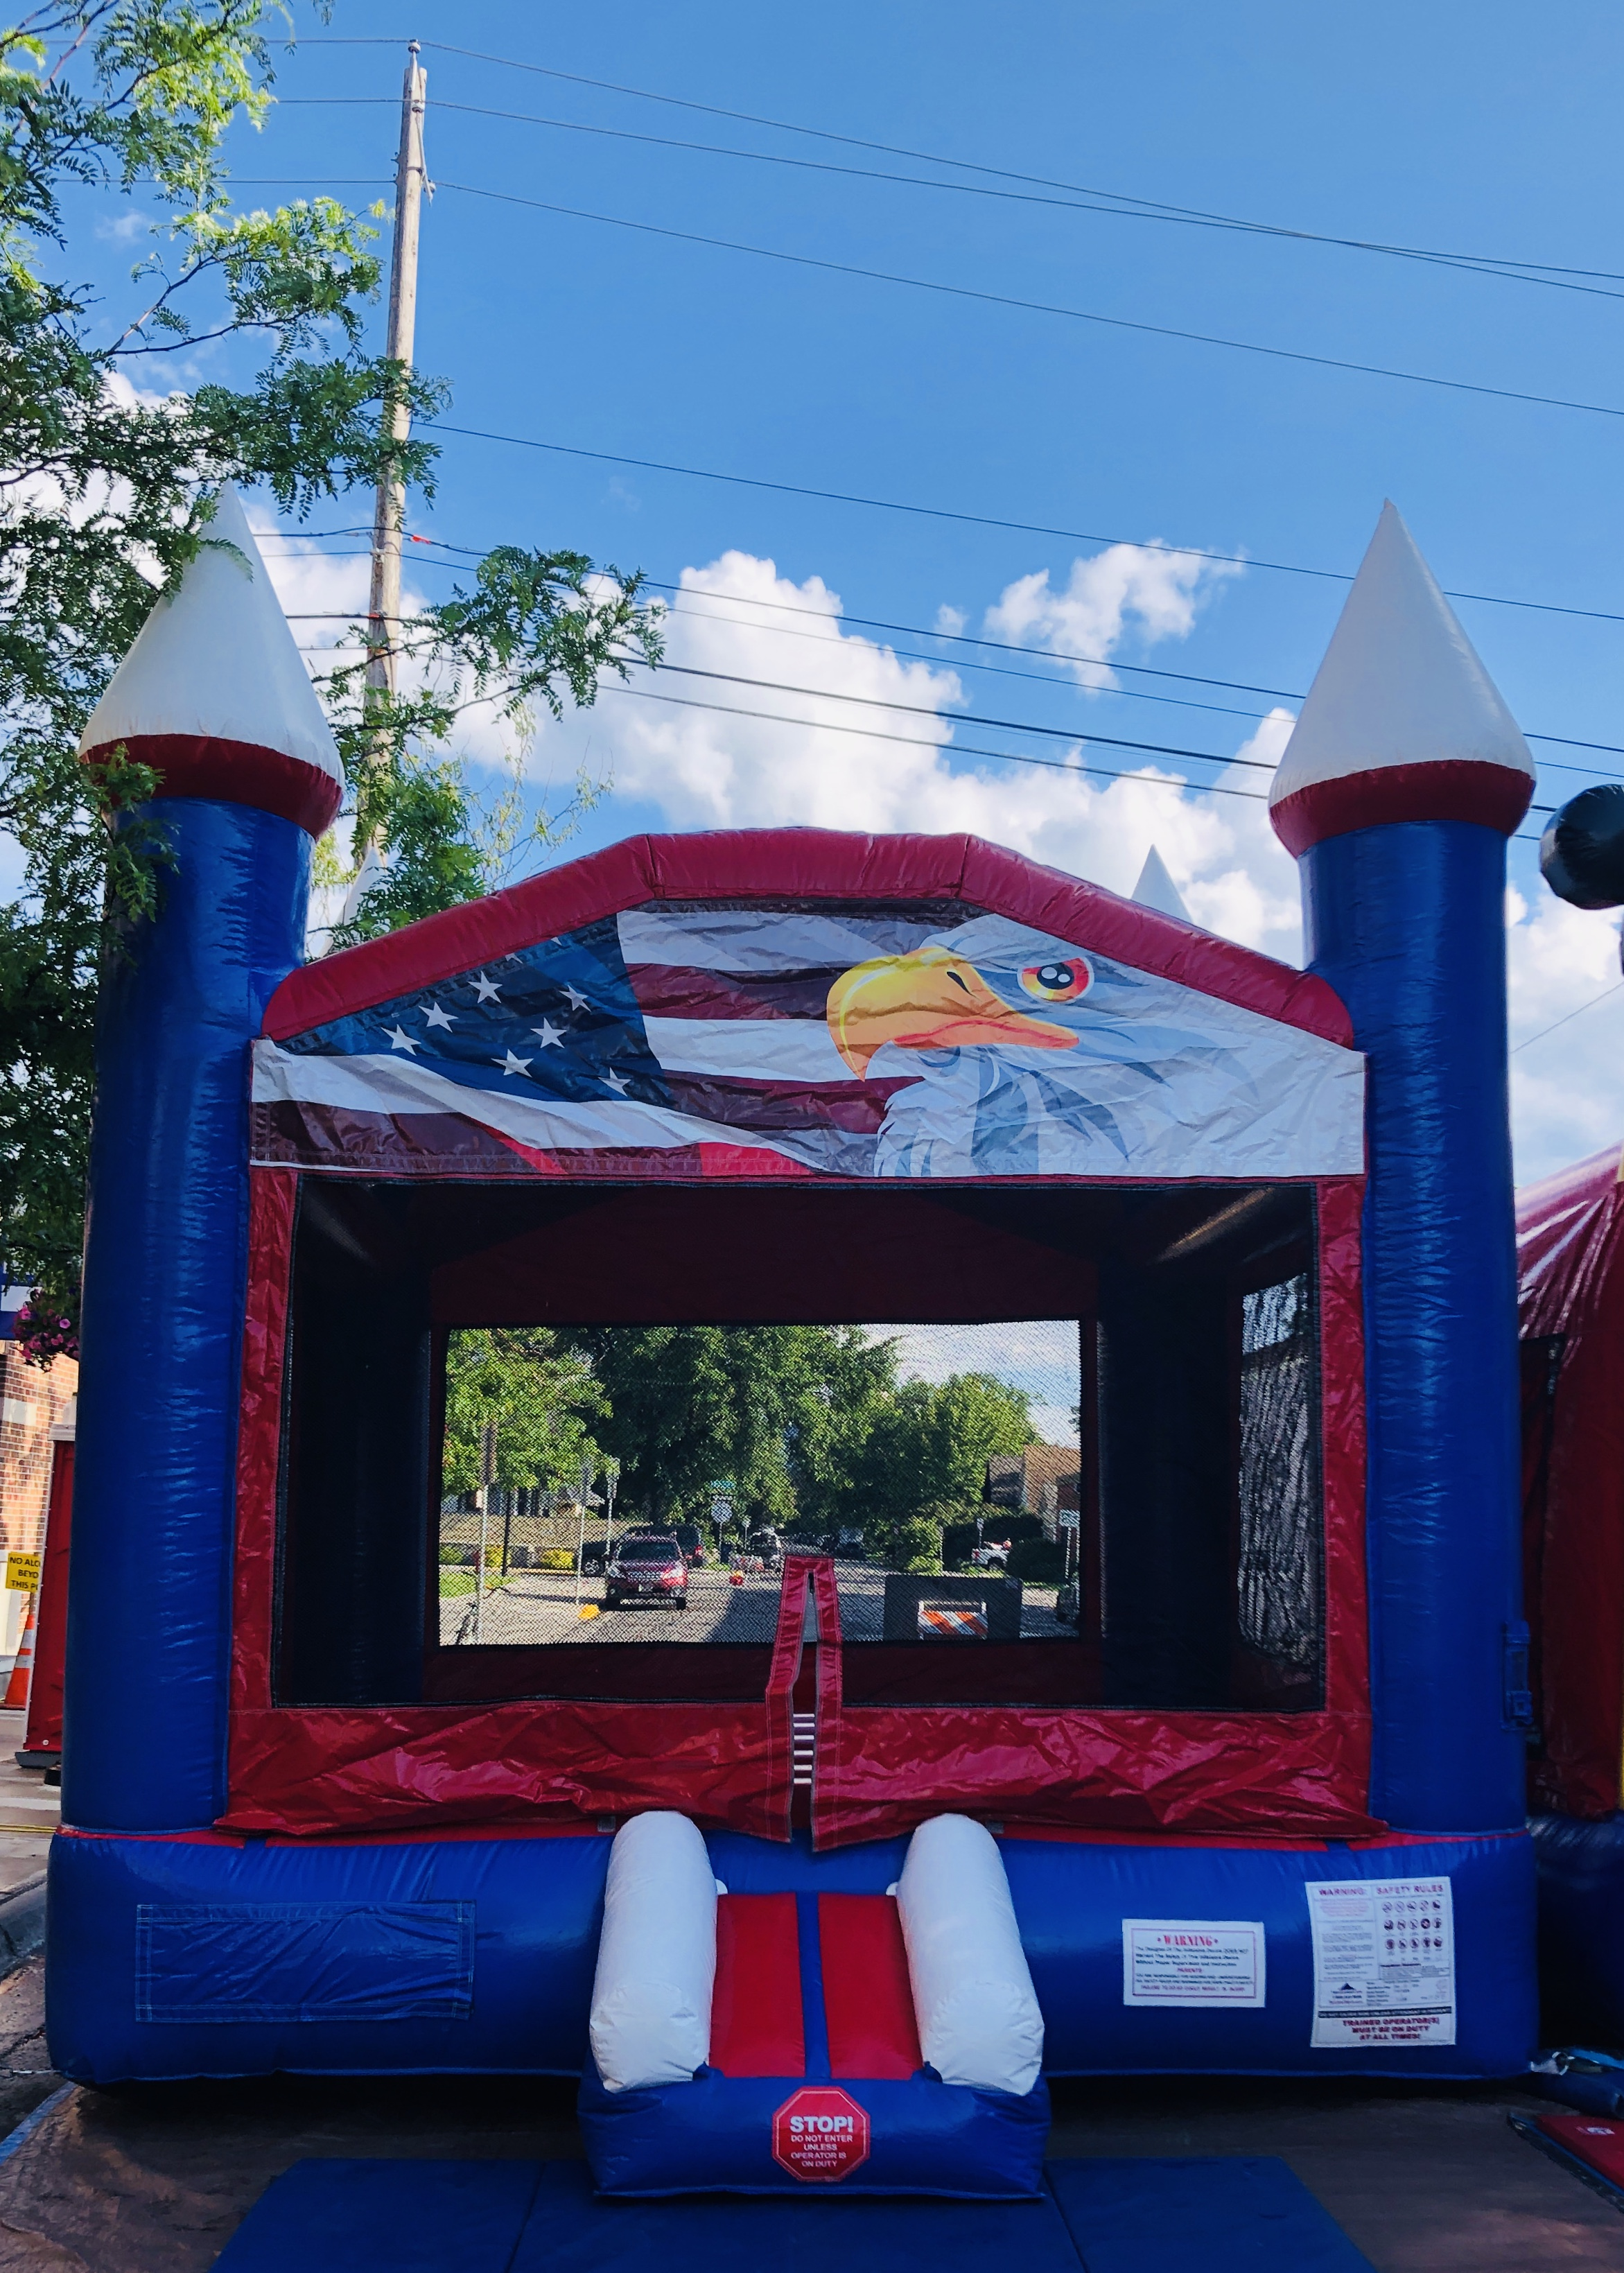 Red White & Blue Bouncer - Bouncer Size 17'L X 14'W X 15'HSpace required for setup 20'L X 20'W X 20'H3 hours $1496 hours $189